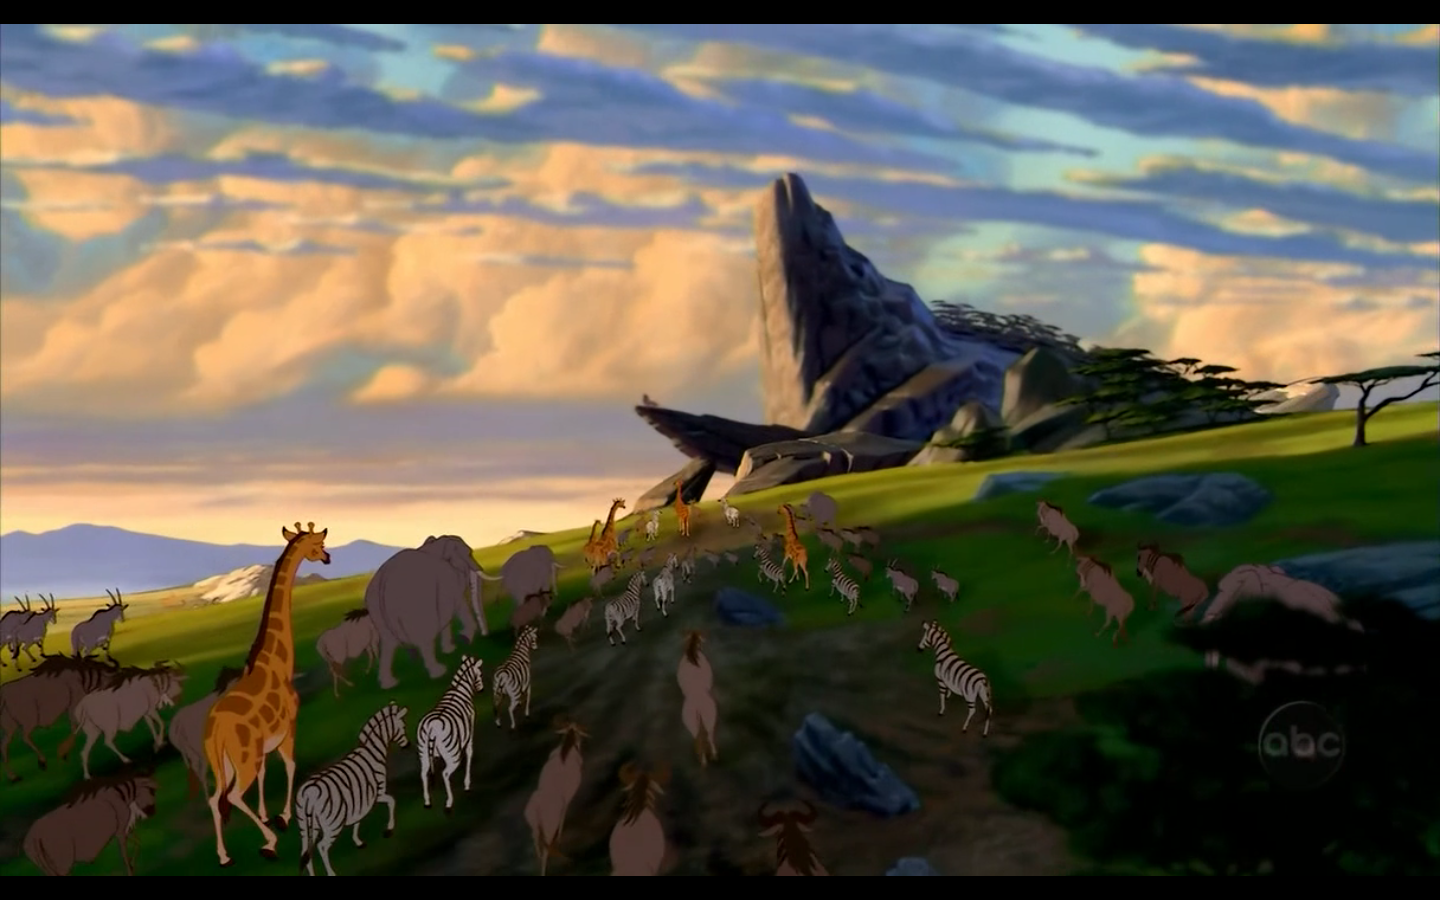 Lion king pride rock scene - photo#3